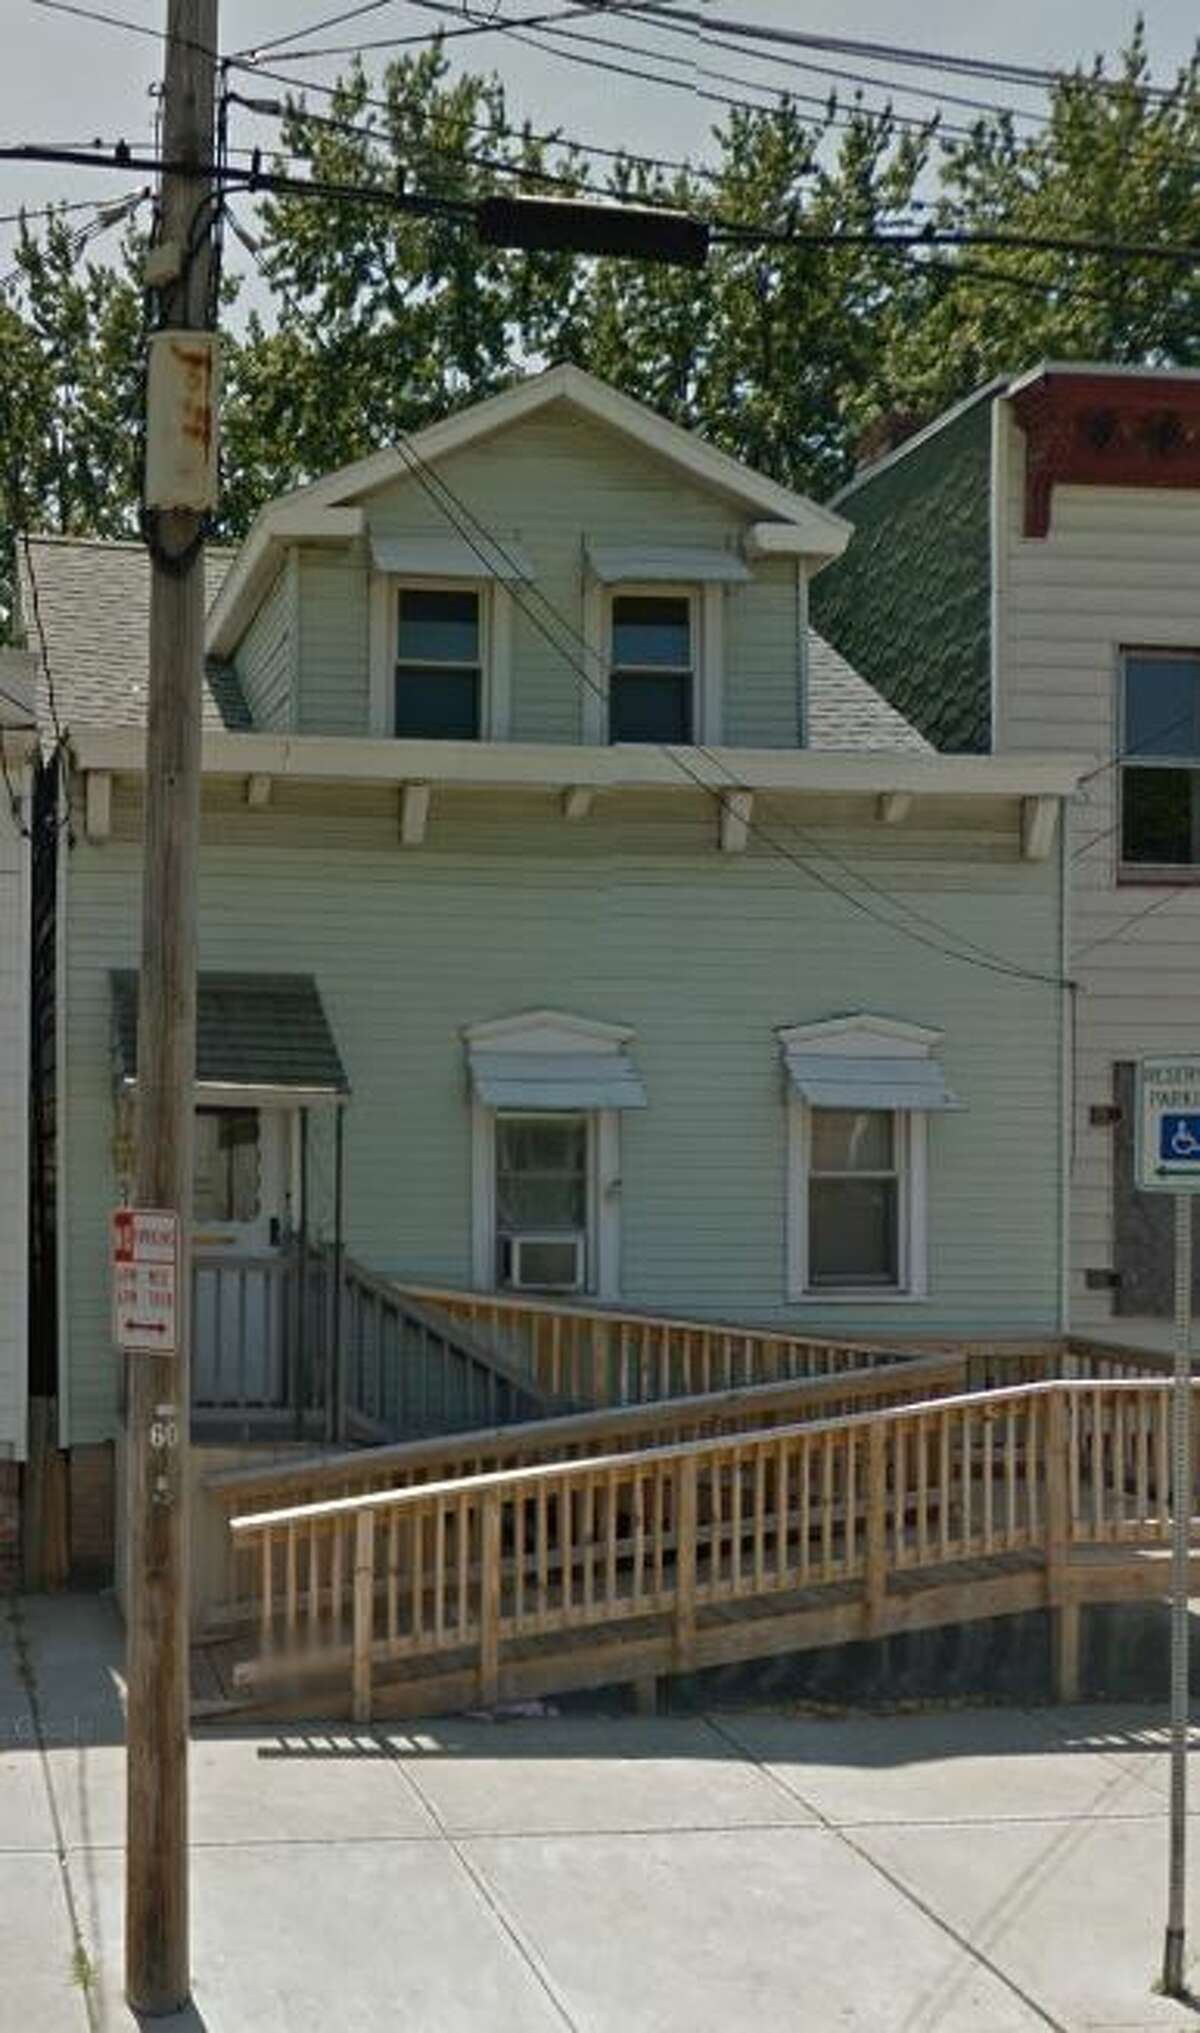 510 Second St., Albany, $20,000